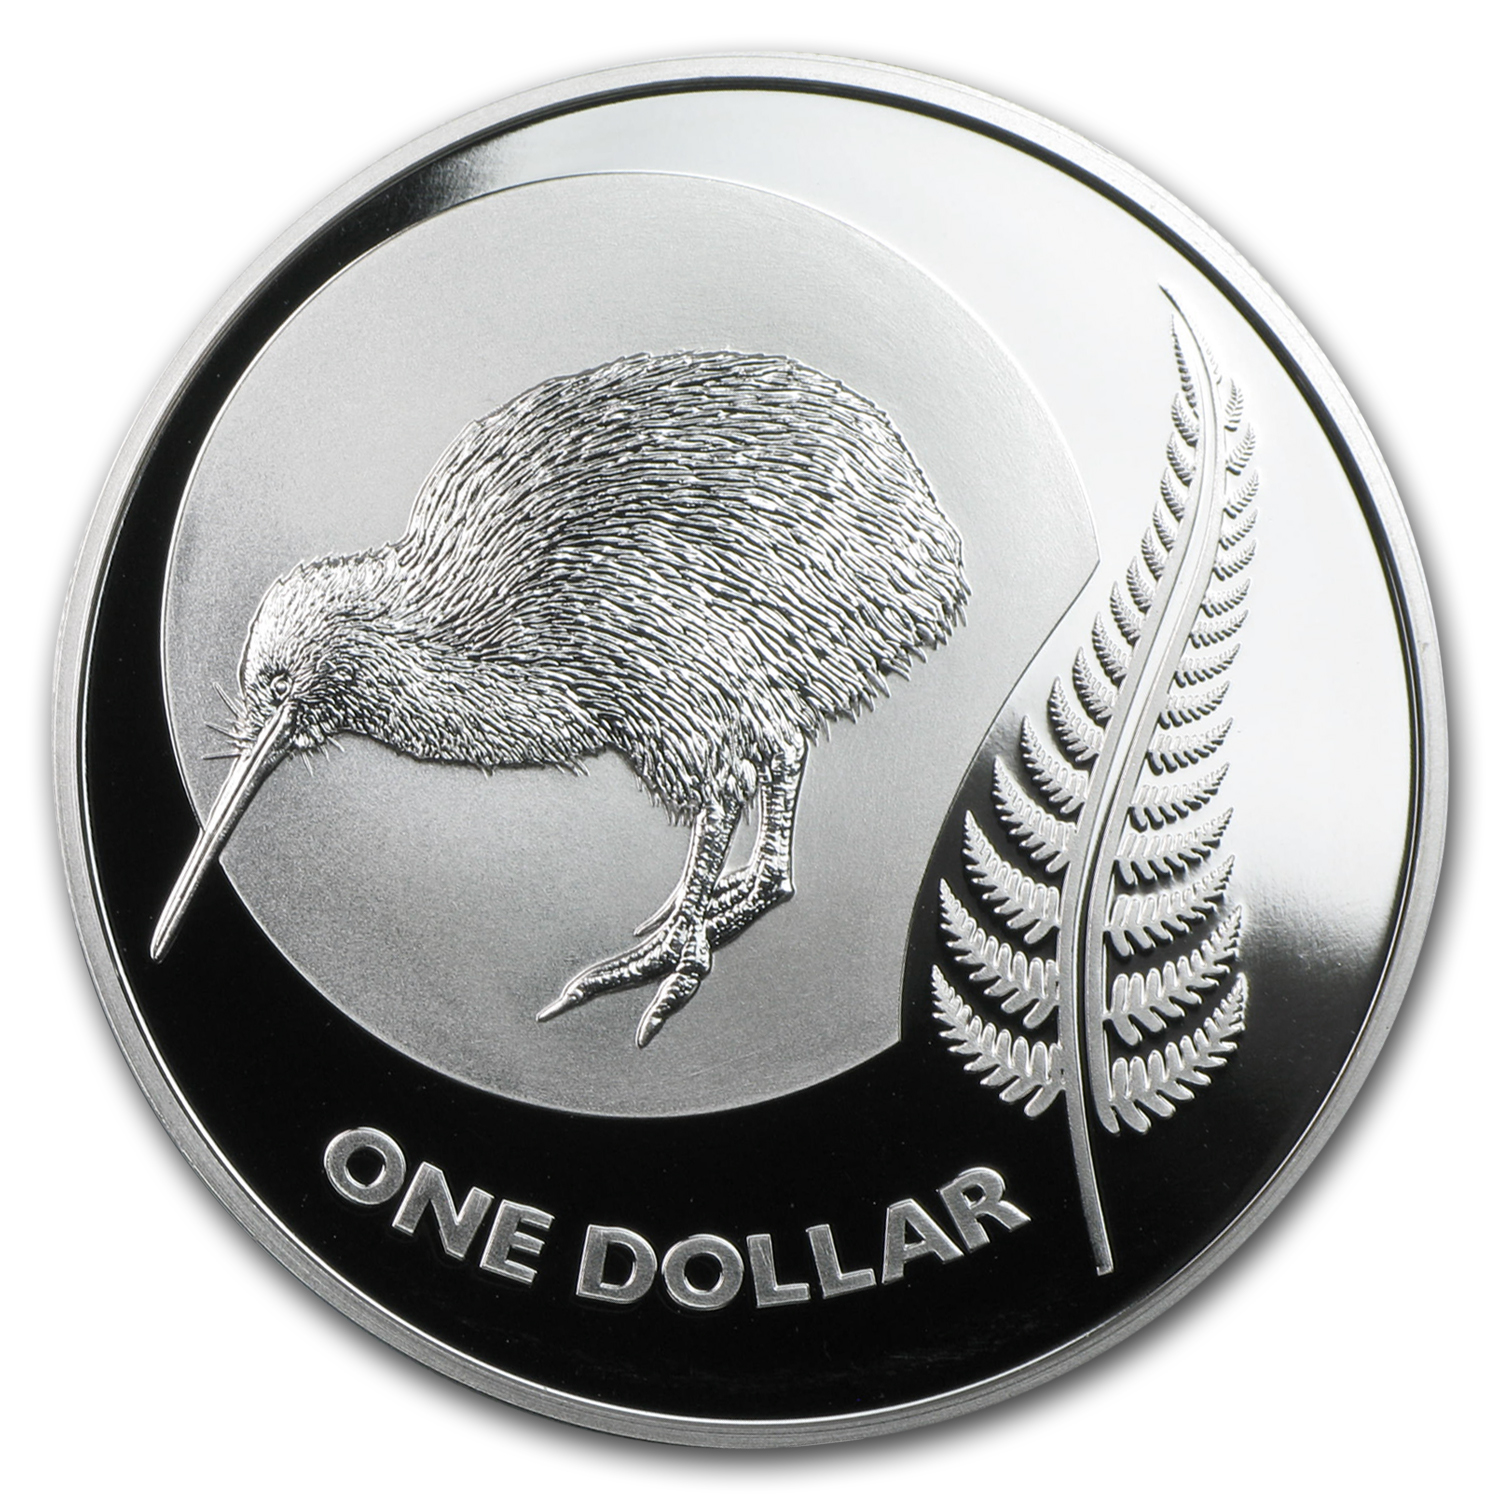 2011 New Zealand 1 oz Silver Icons $1 Kiwi Proof (Box & COA)